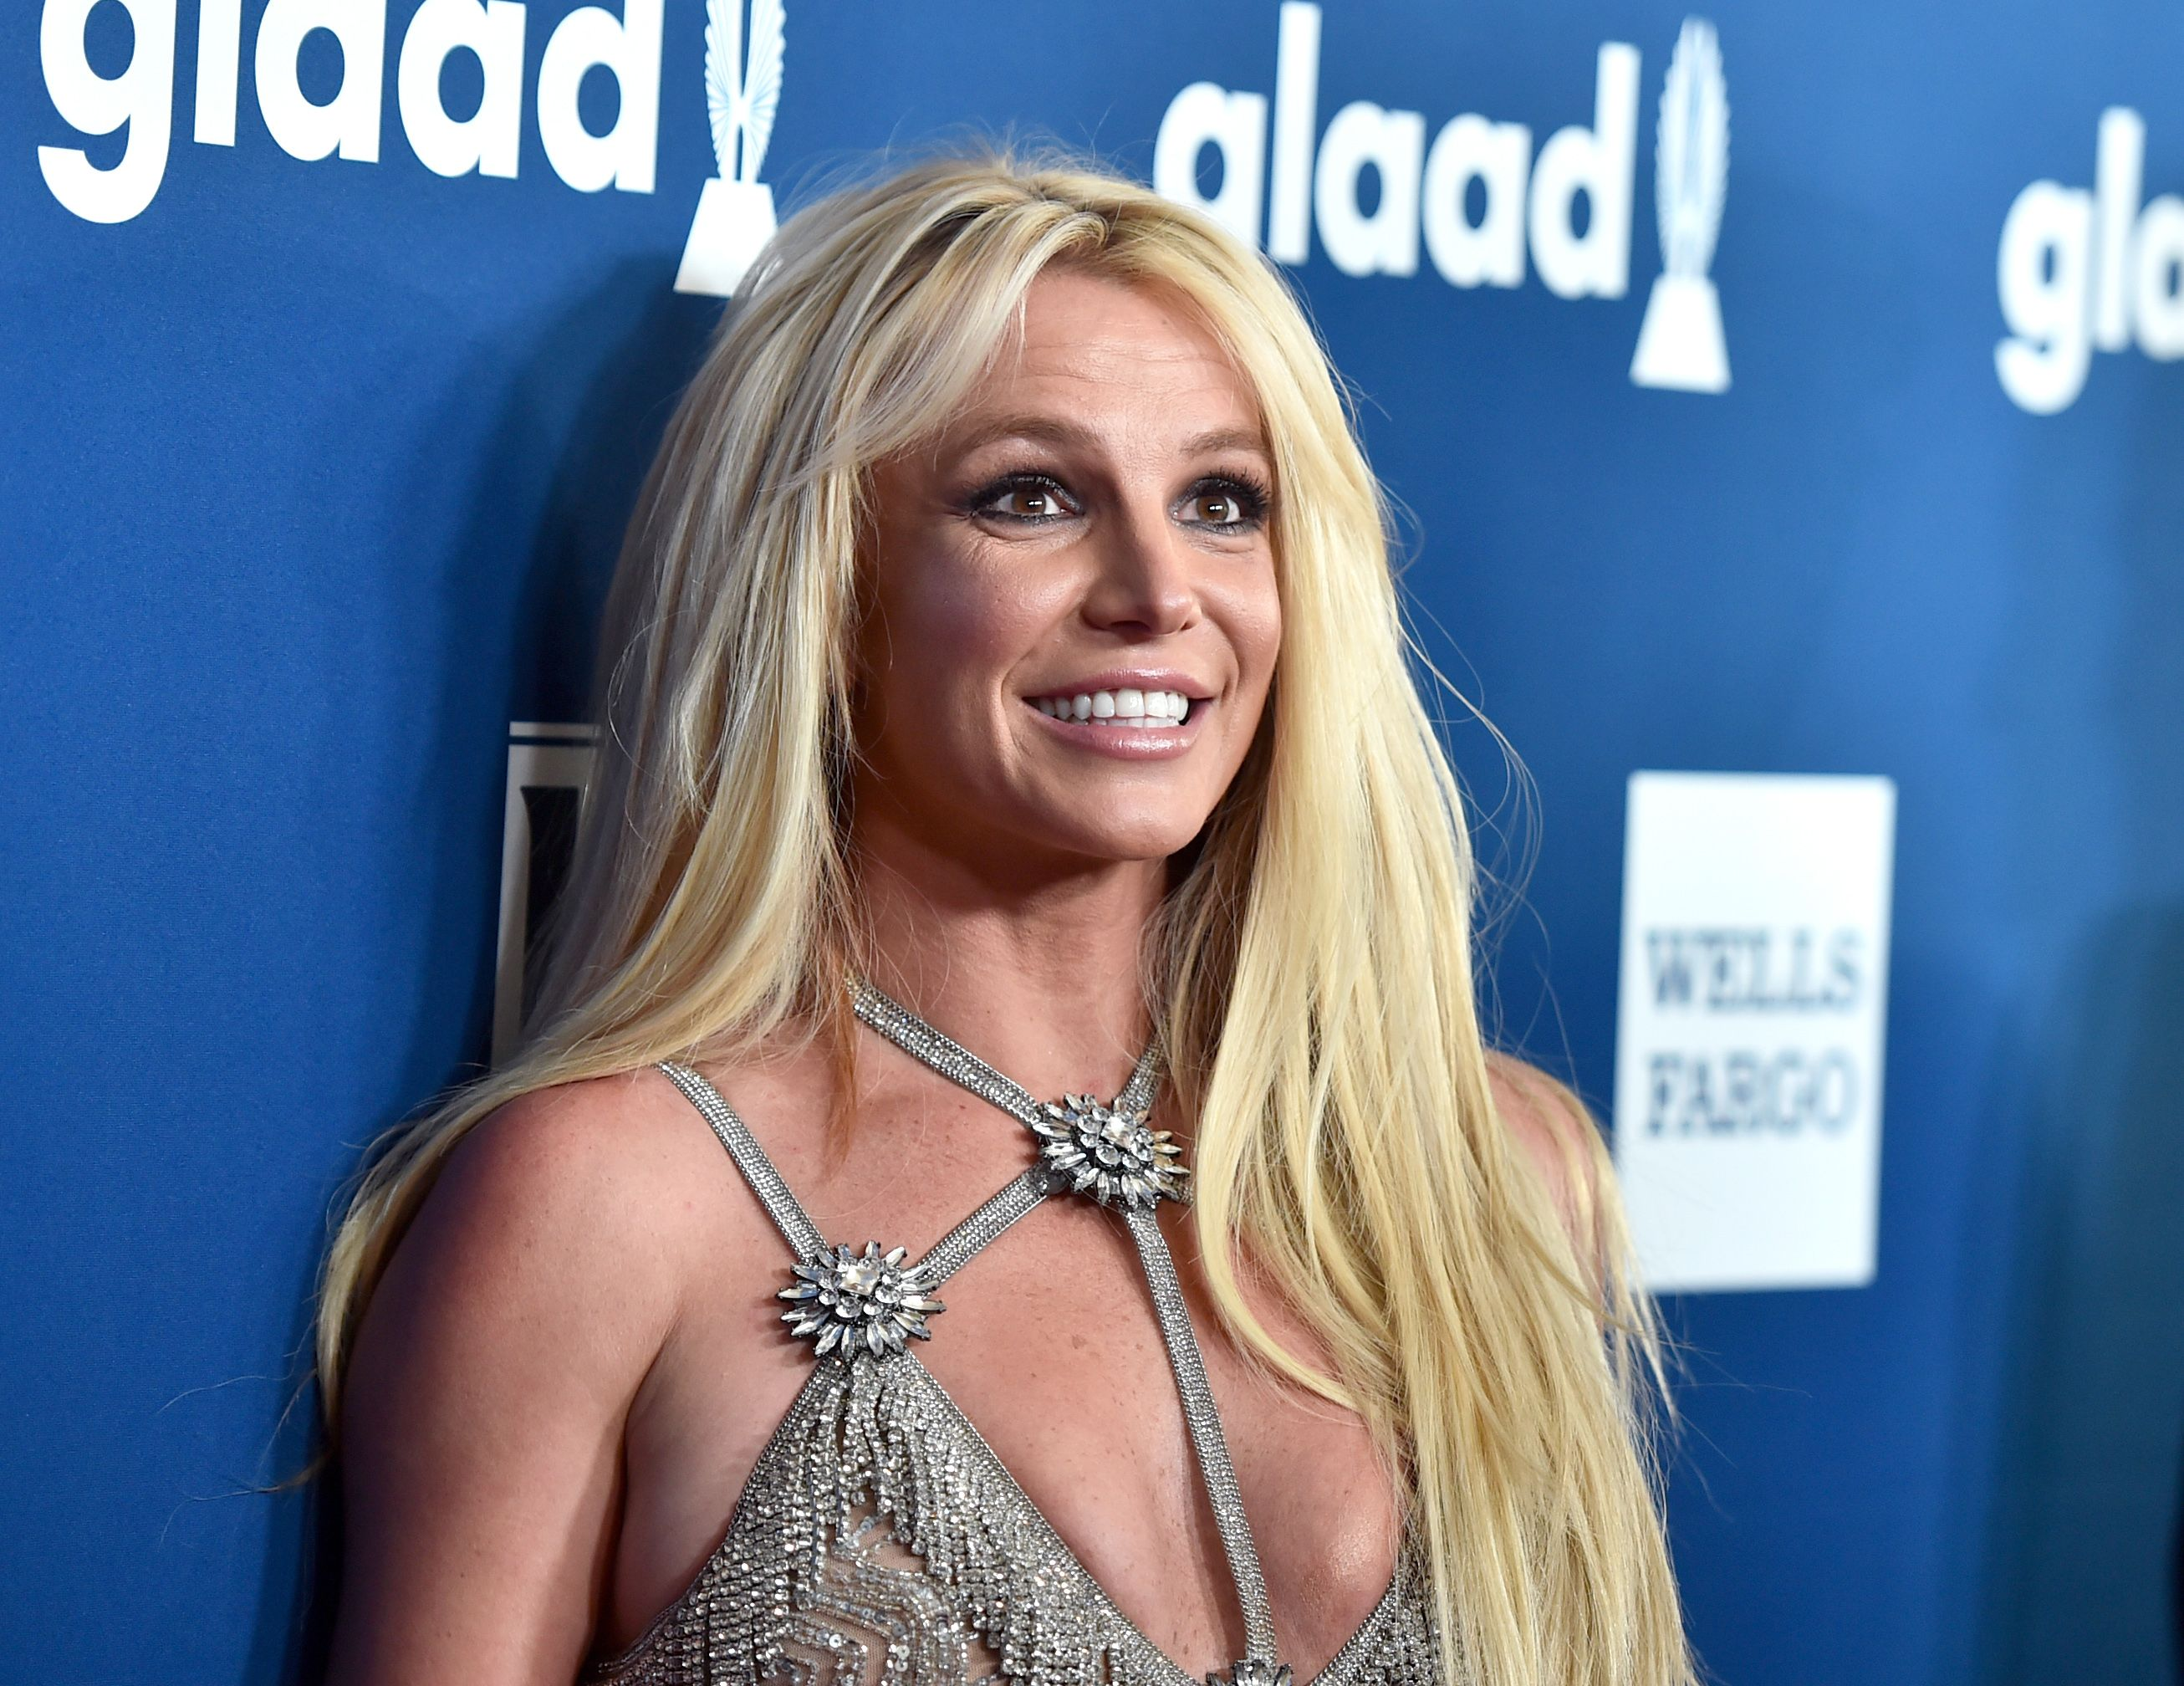 Britney Spears Reveals The 15-Minute Treadmill Workout She Does to Stay in Shape